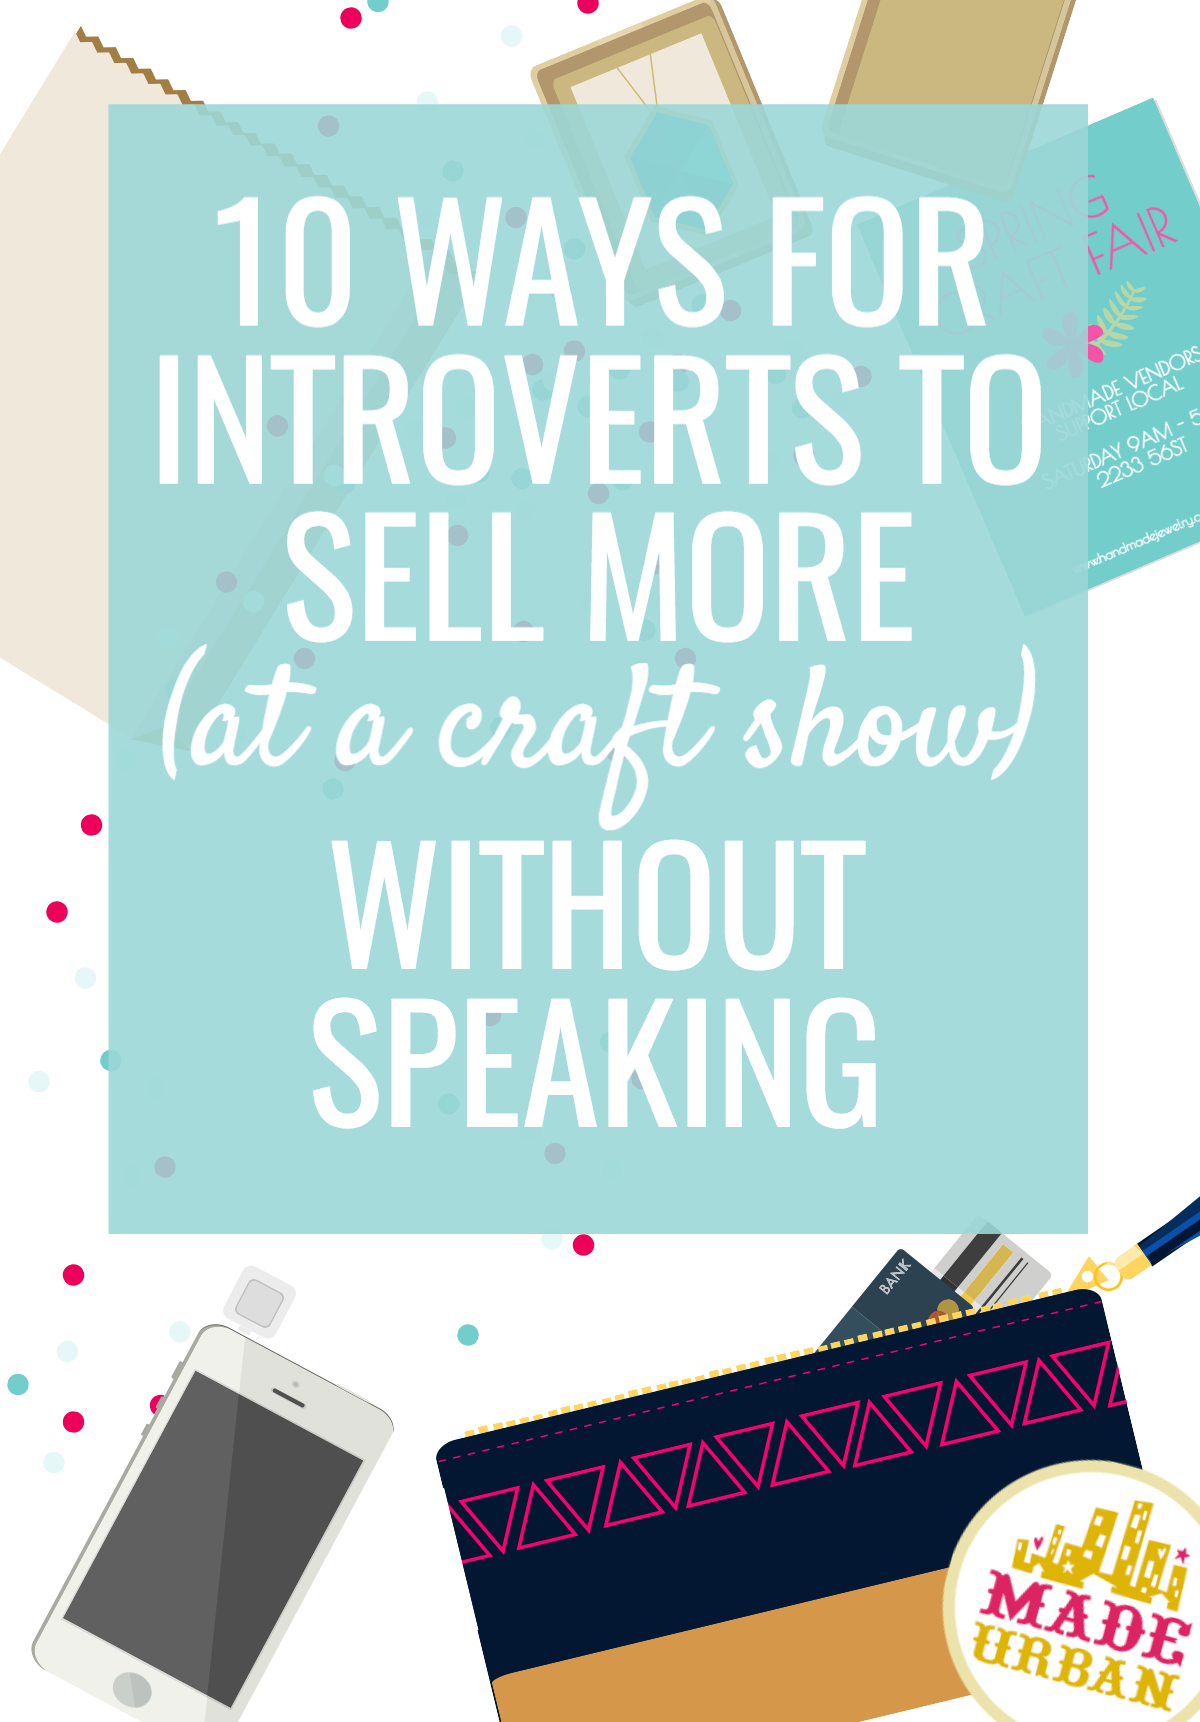 Craft shows can be intimidating for introverts & selling is a skill that can always use improving. These tips will help you silently sell handmade products